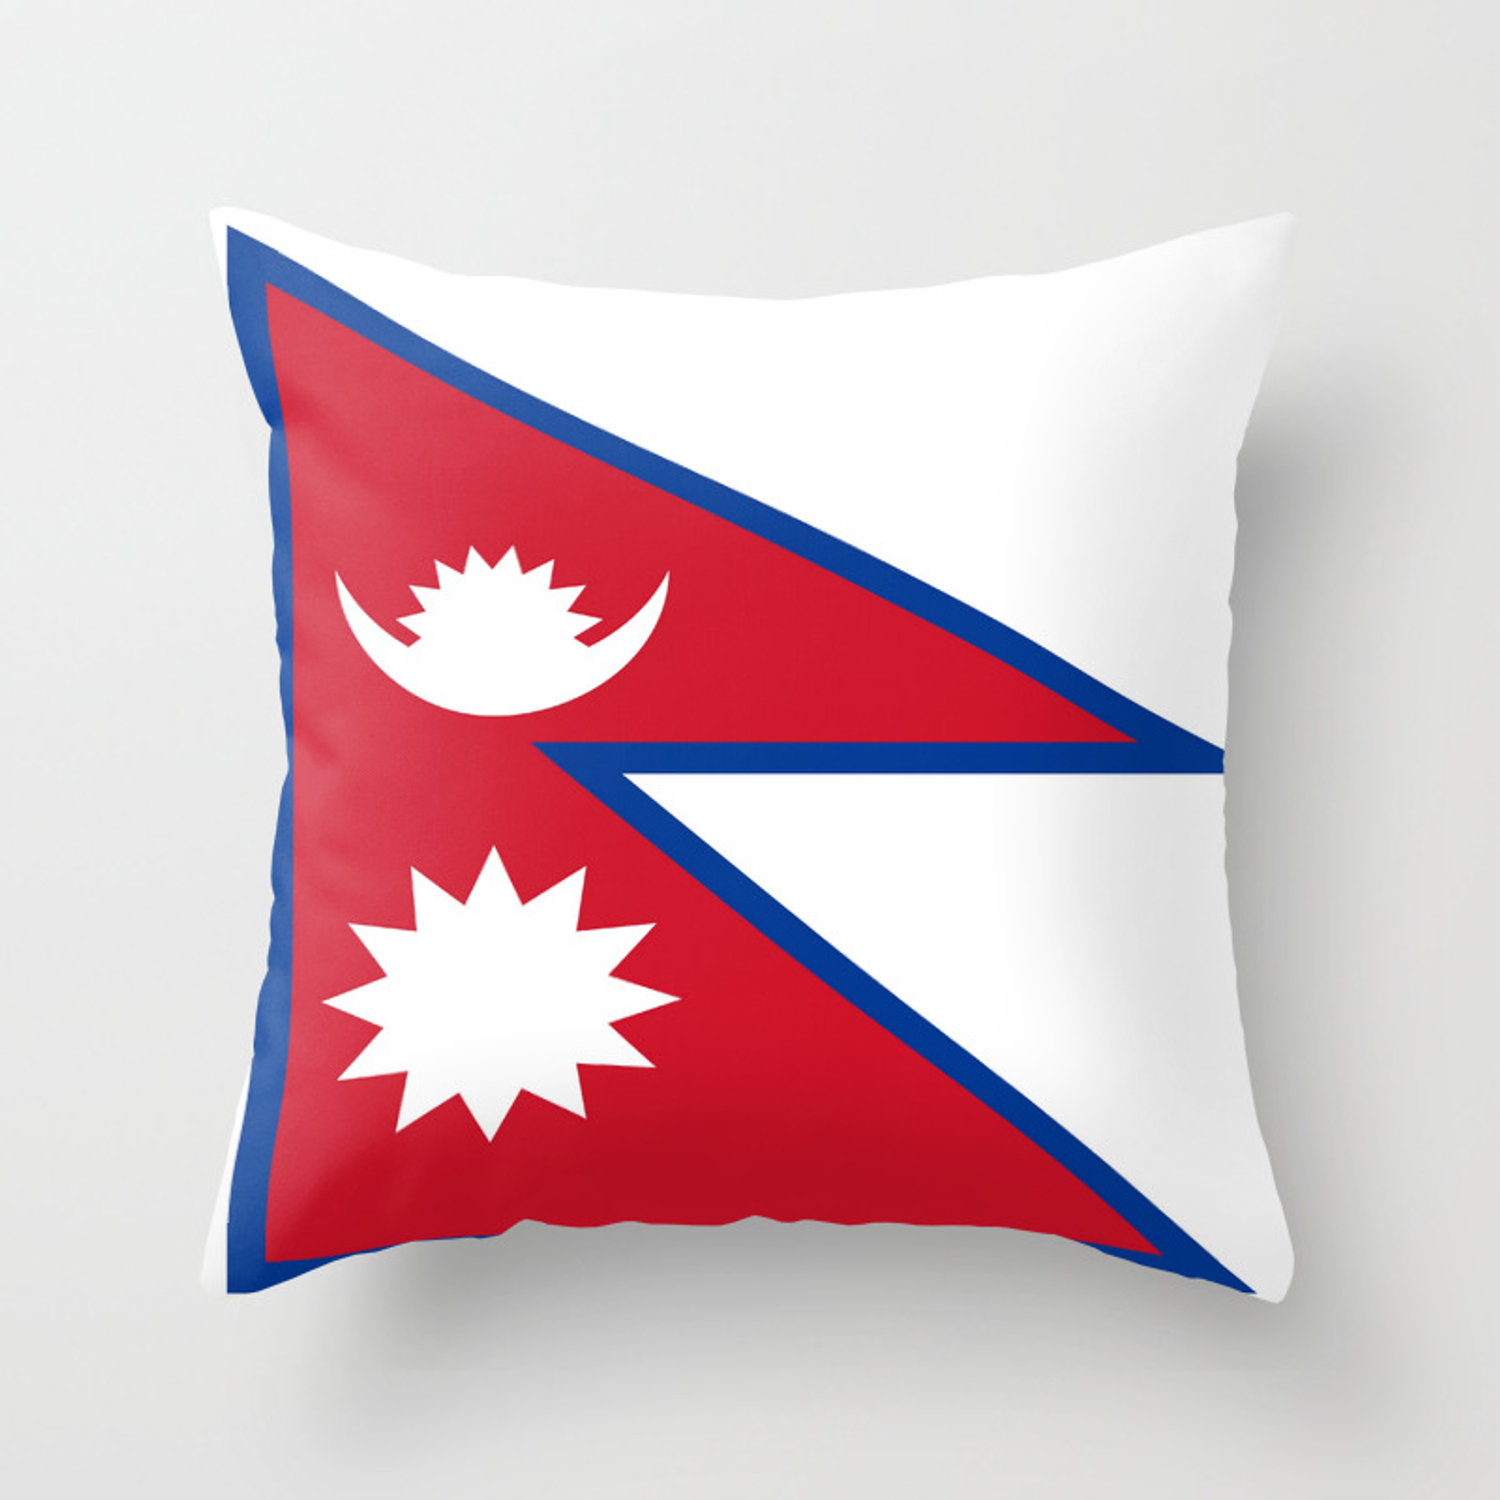 Flag Of Nepal Nepal Buddhism Nepali Nepalese India Asia Kathmandu Pokhara Tibet Throw Pillow By Oldking Society6